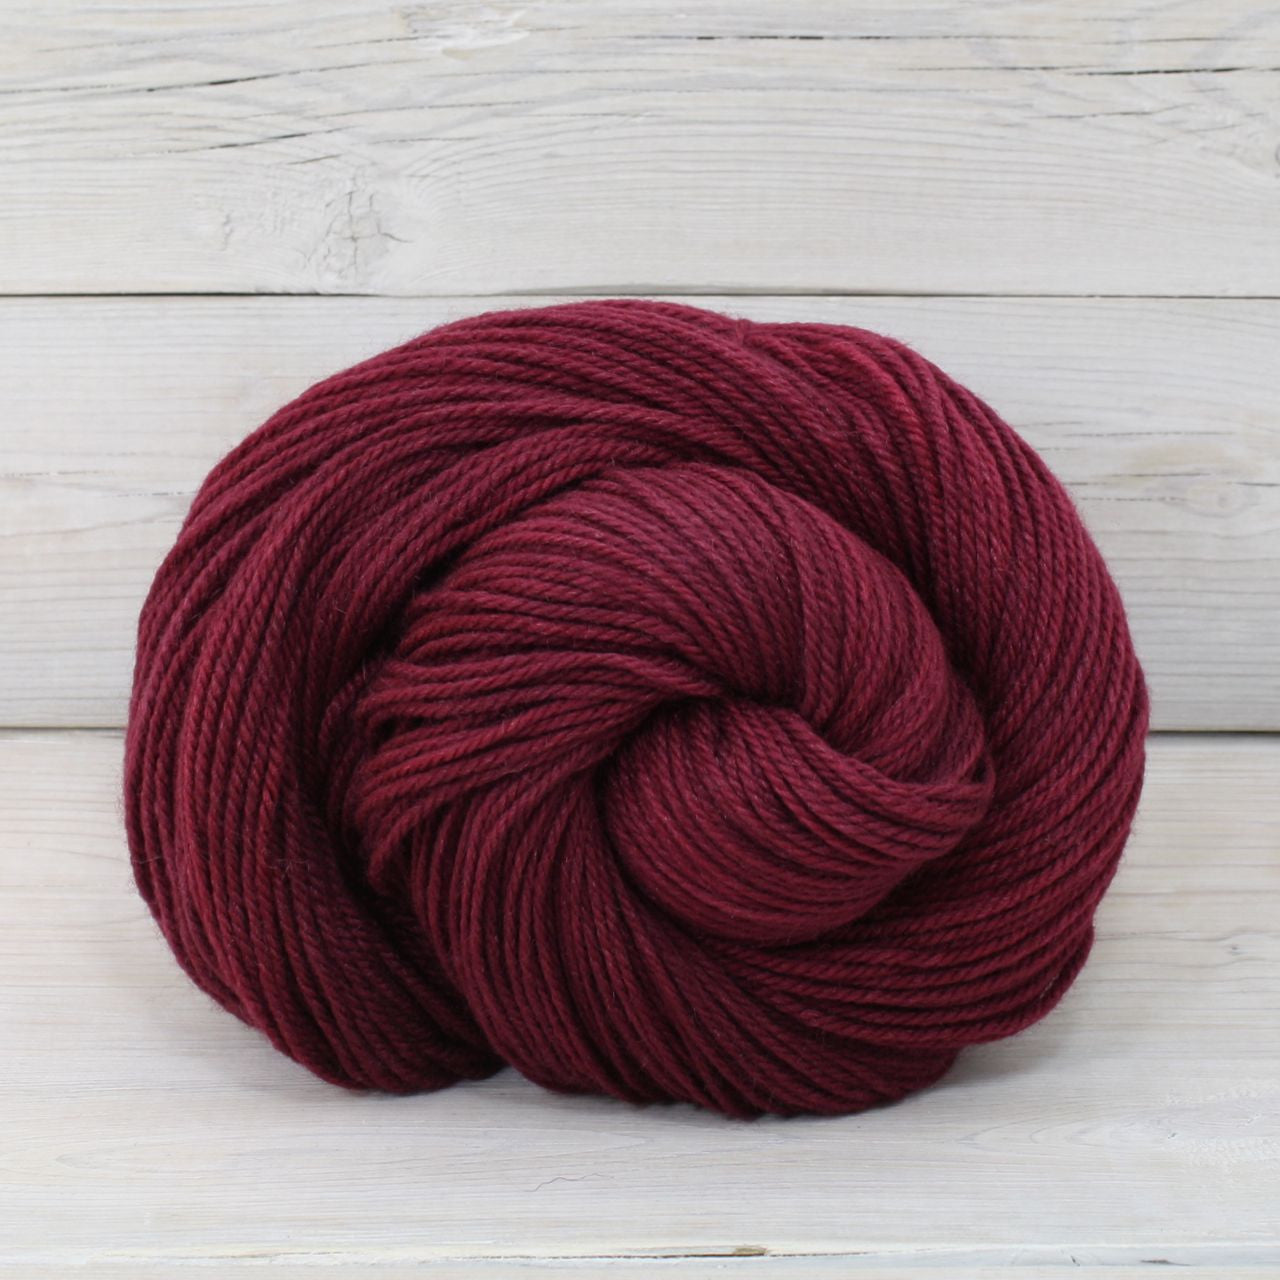 Luna Grey Fiber Arts Zeta Yarn | Colorway: Cranberry